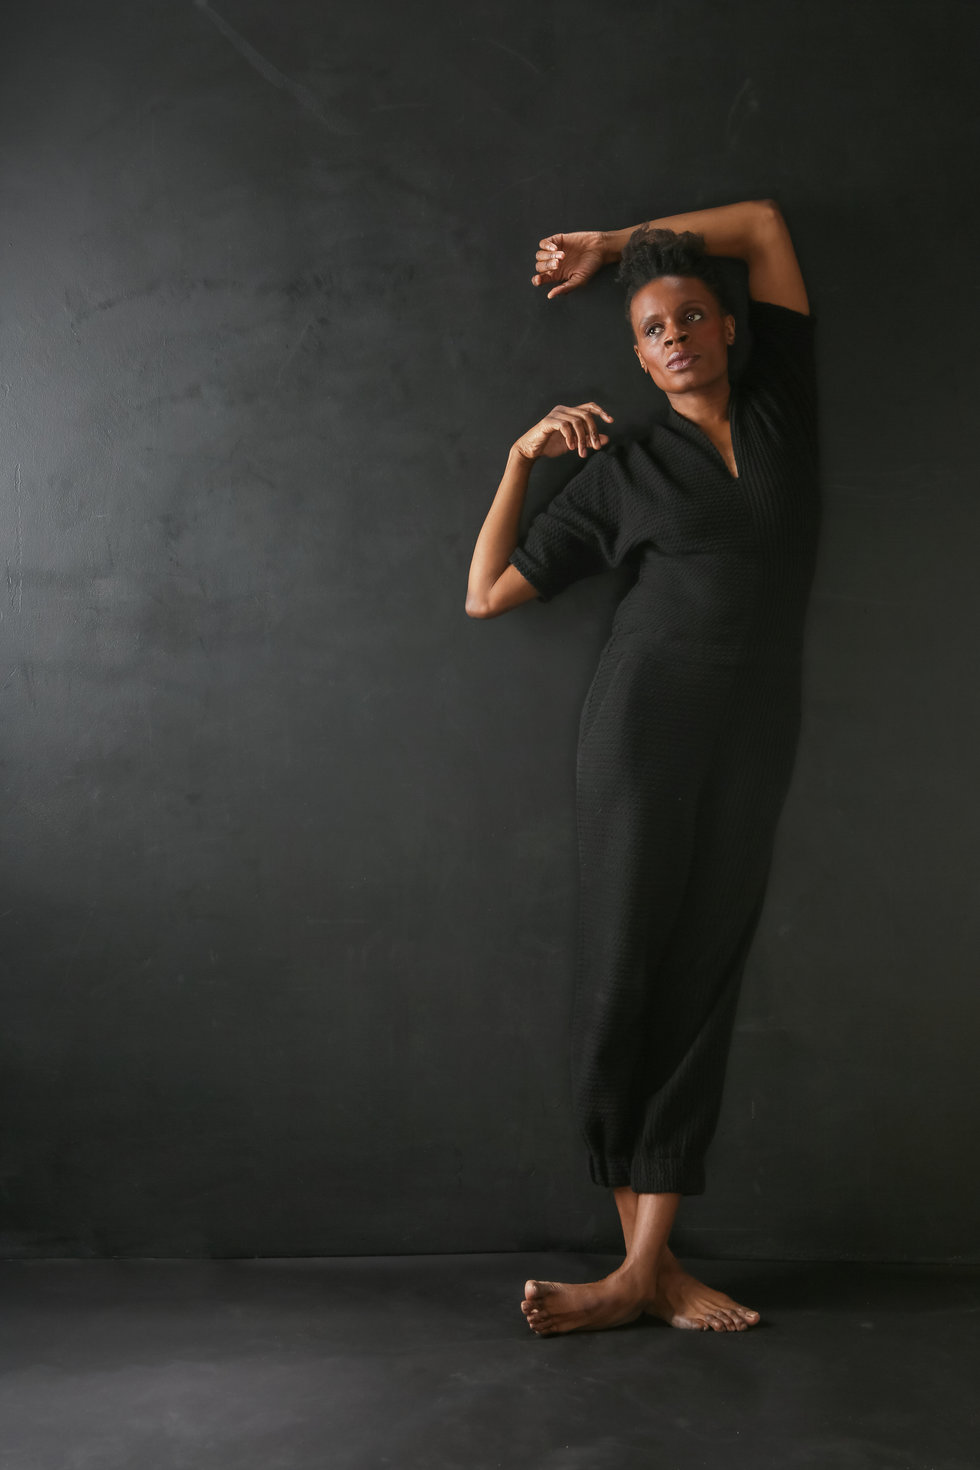 Okwui Okpokwasili leans against a dark background, one foot crossed over the other